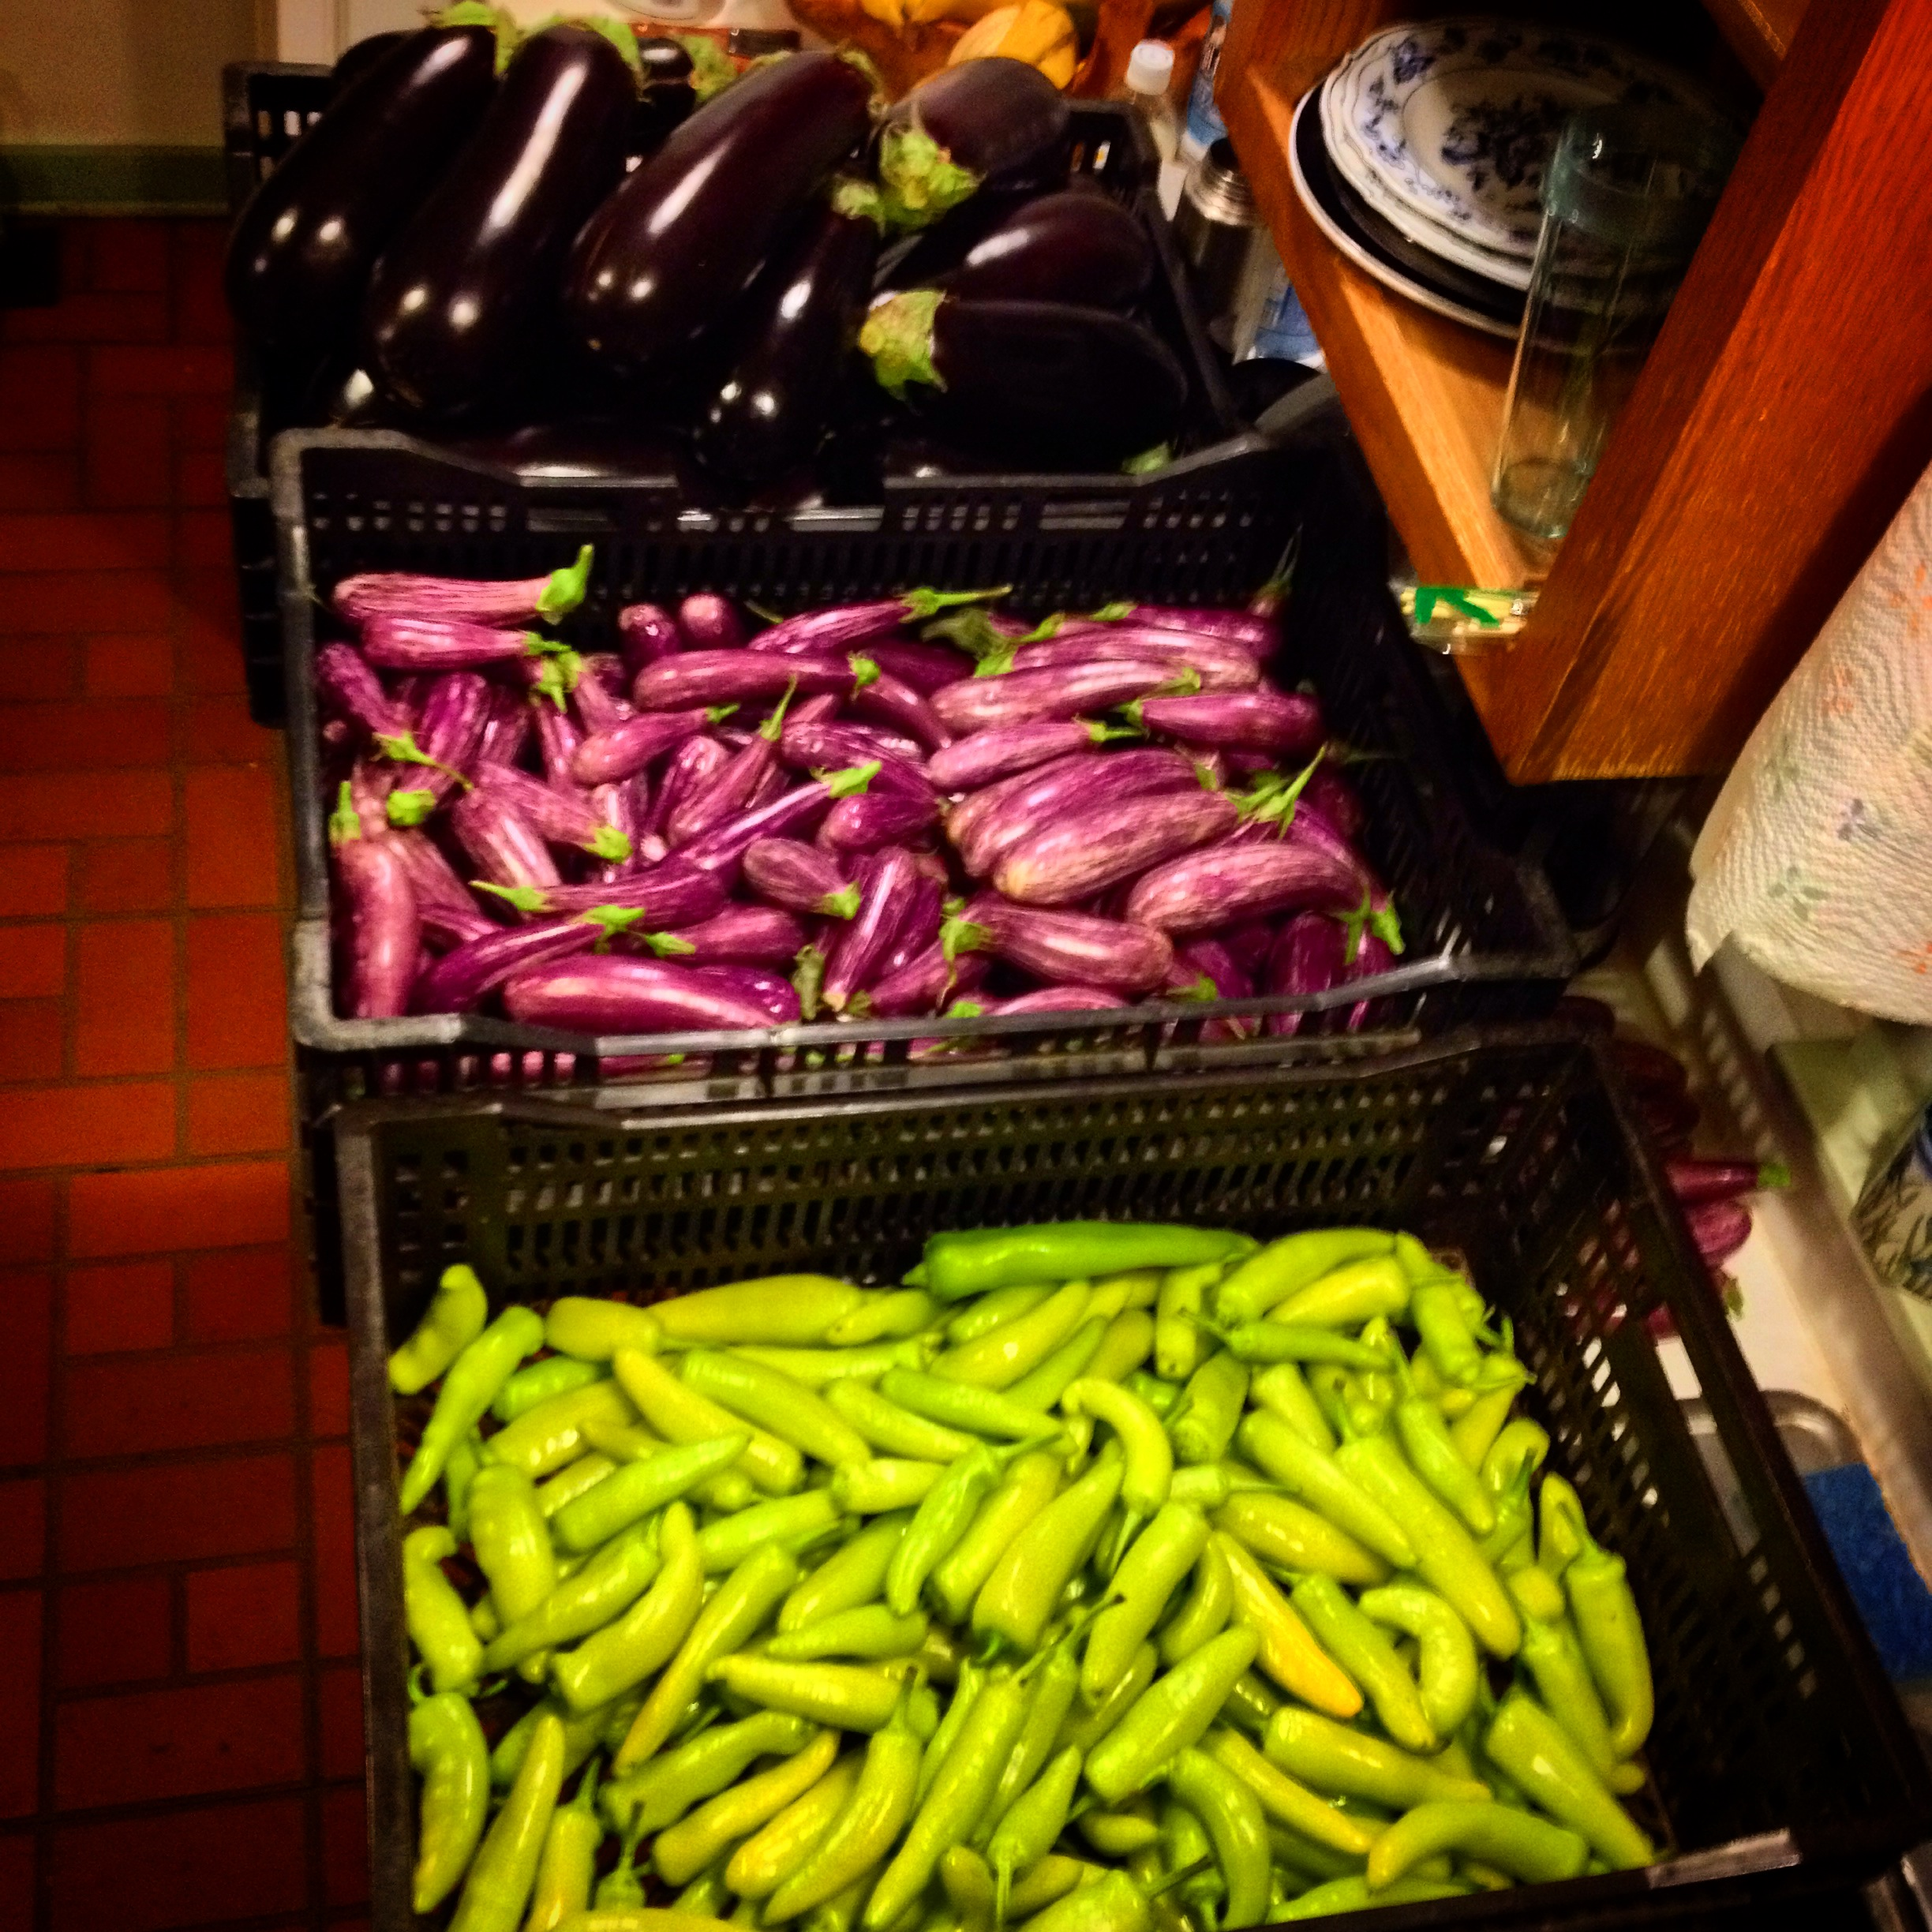 68lbs italian eggplants fairytale eggplants hungarian wax peppers